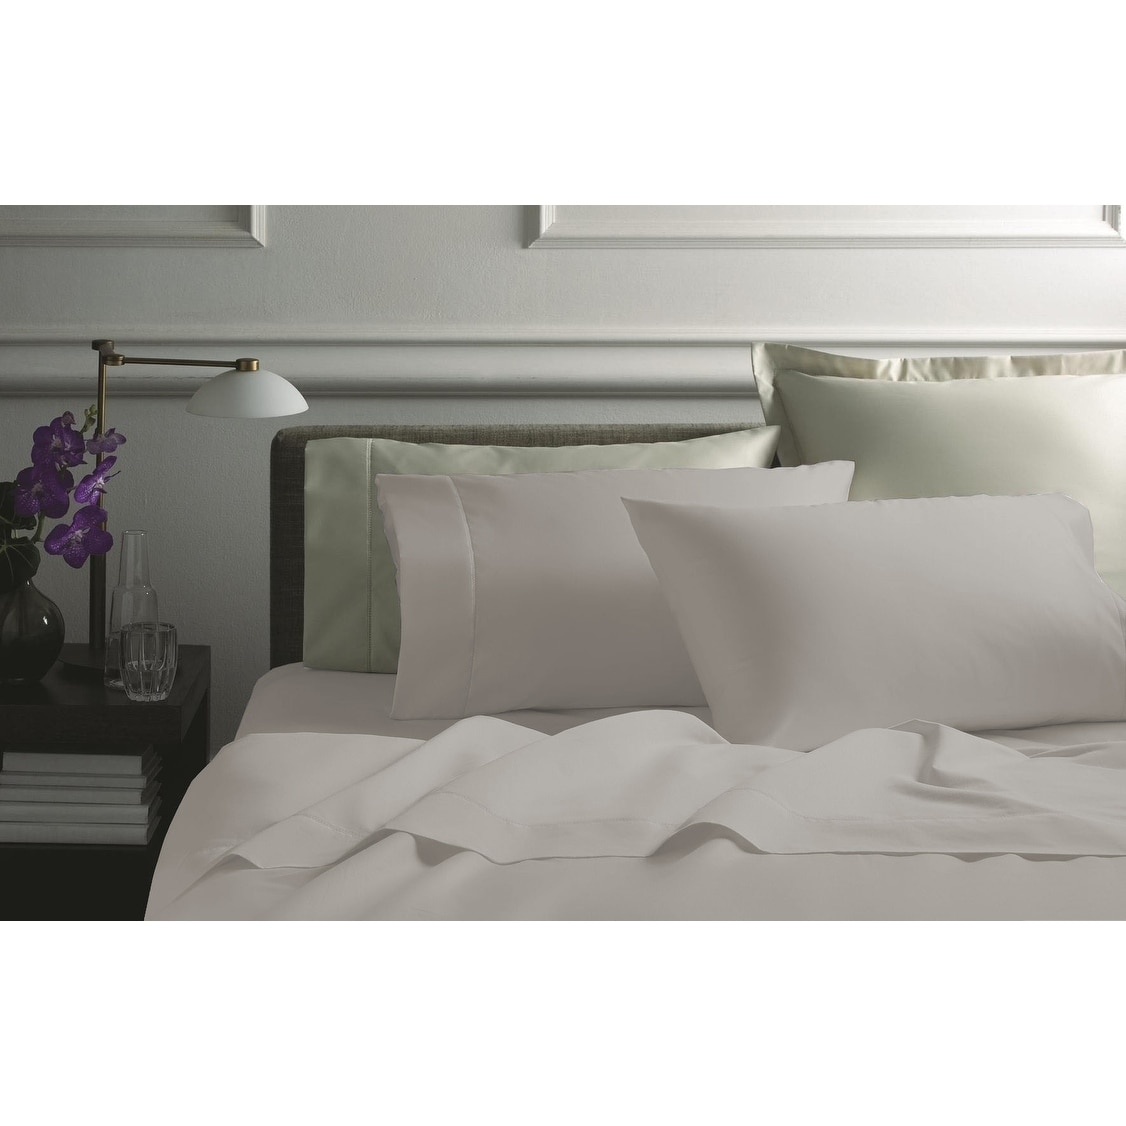 4 PCs Sheet Set 1000 Thread Count Egyptian Cotton Full Size White Solid